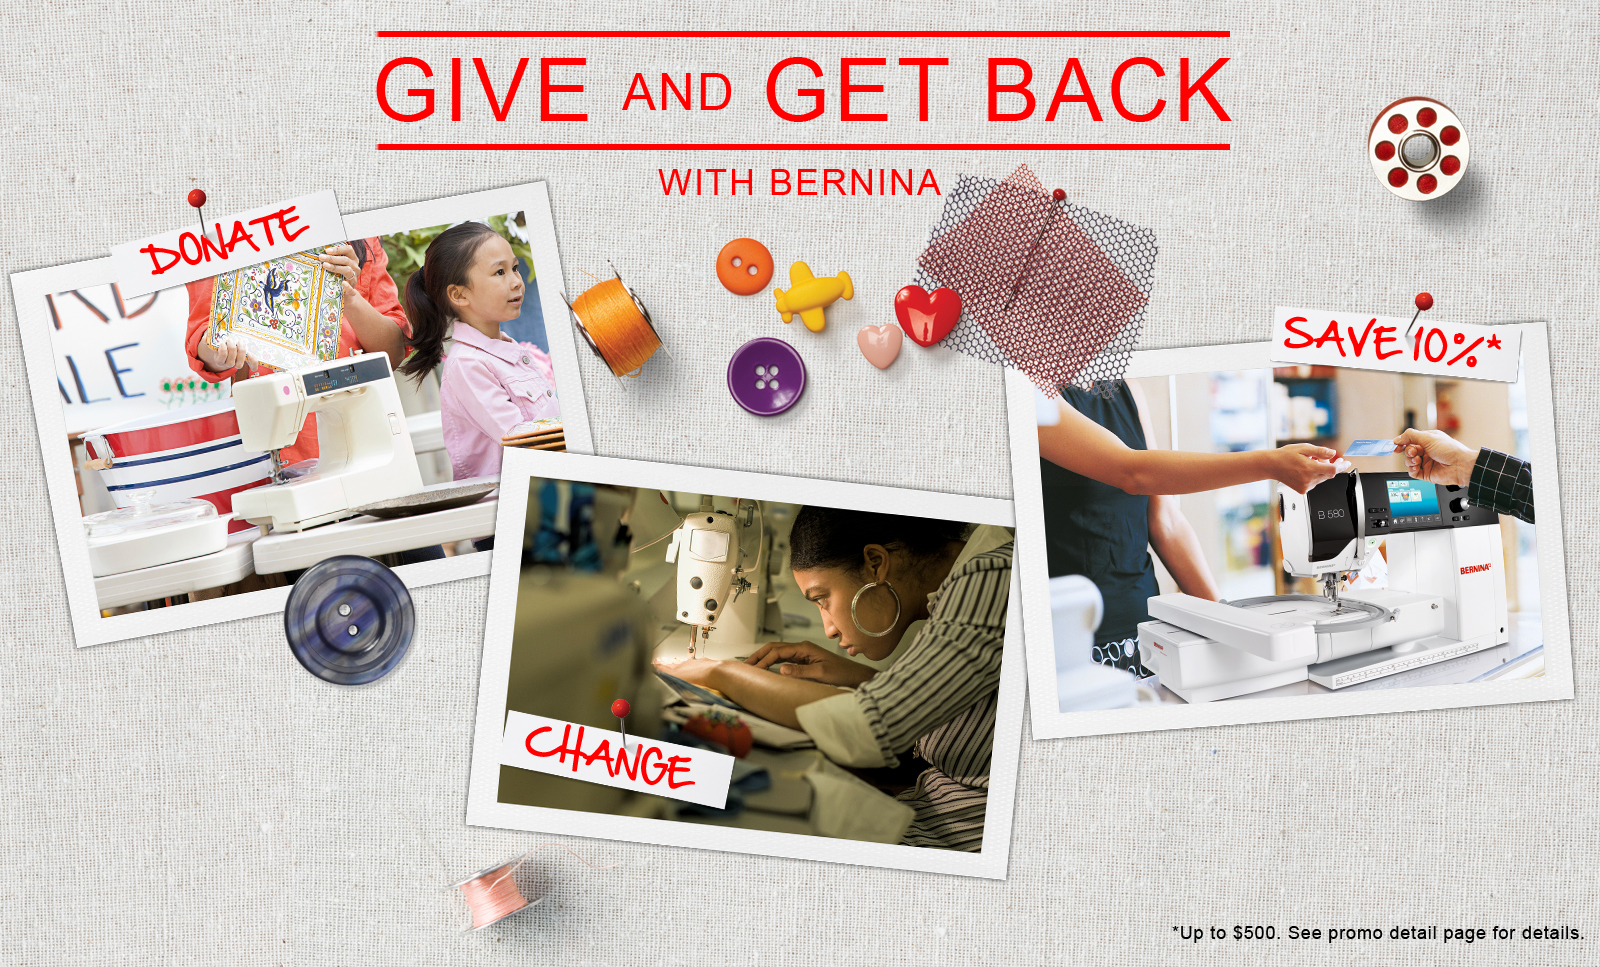 BERNINA Give and Get Back